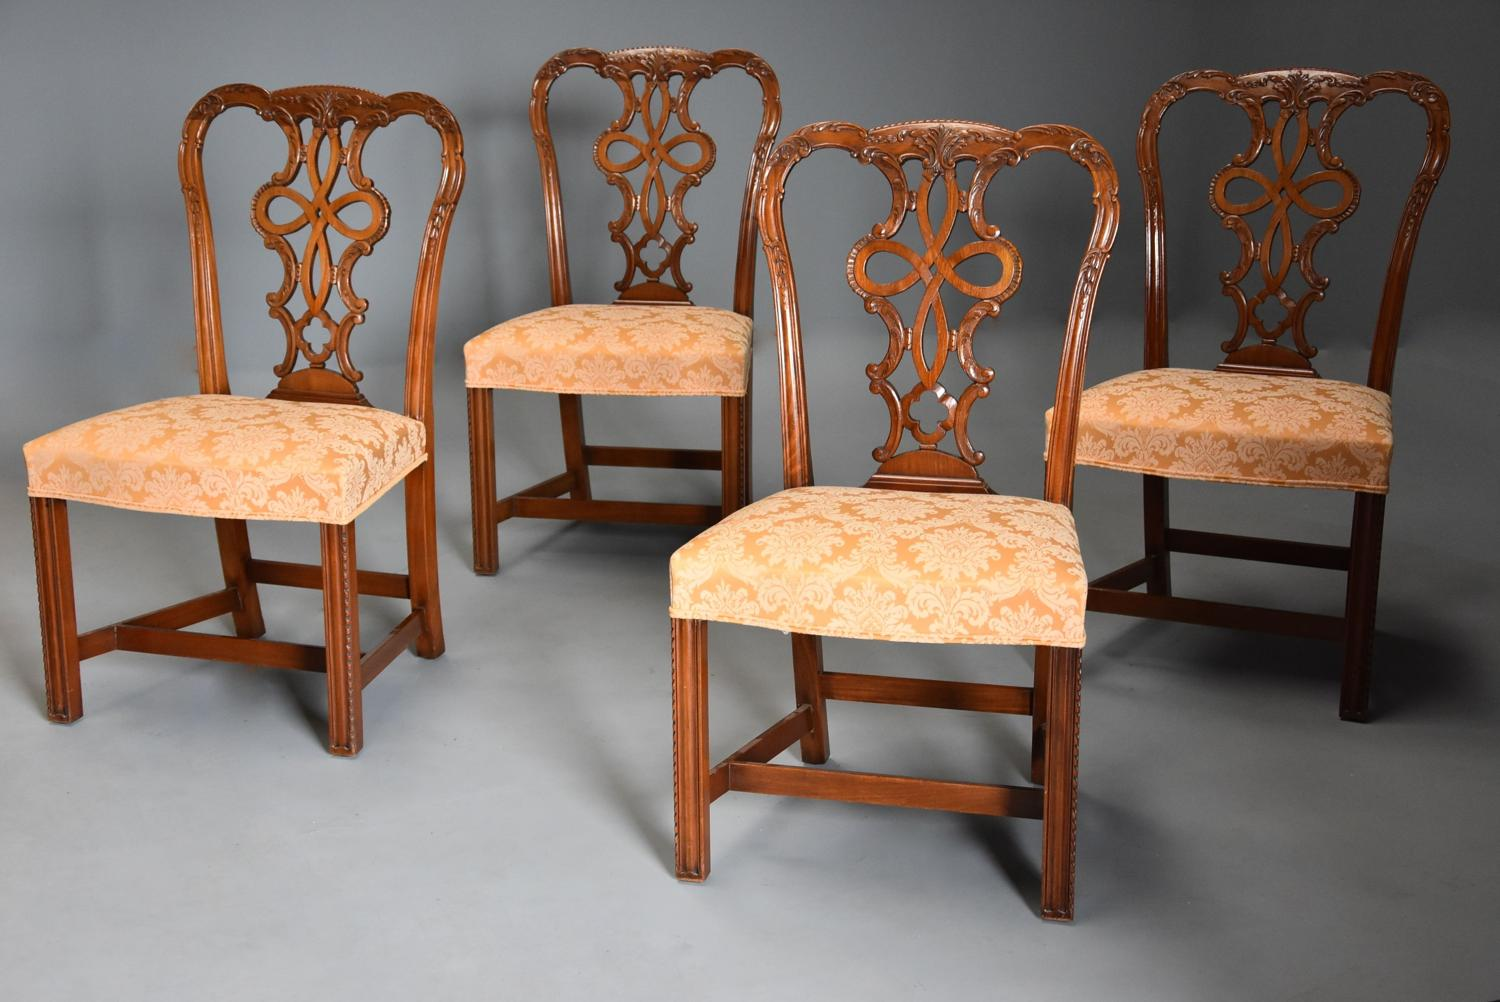 Set of four fine quality early 20thc mahogany Chippendale style chairs